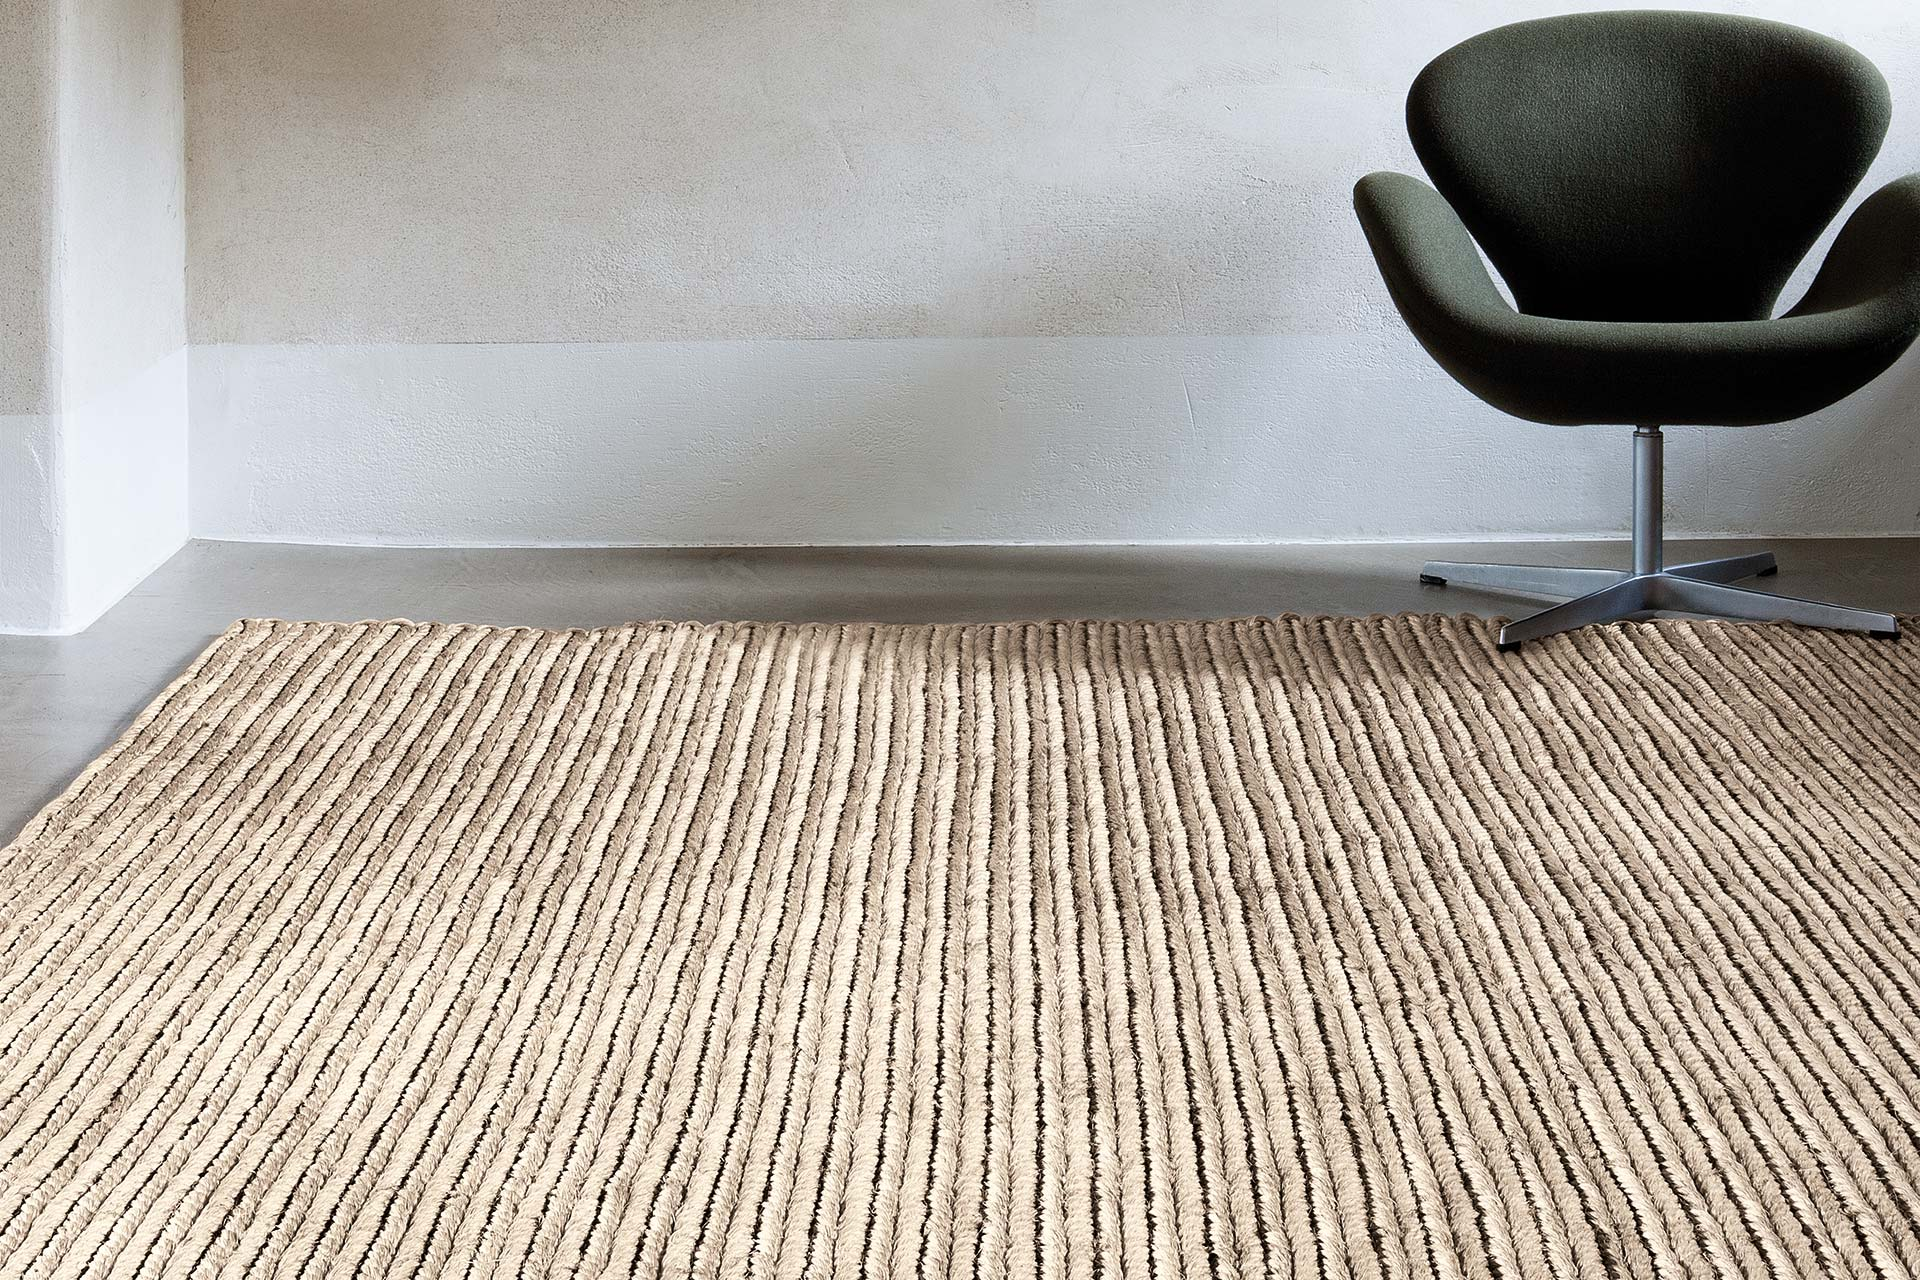 pin back a always trend yet s casual are they got design on and ve major rug versatility laid with too natural room complement soft fiber rugs existing your